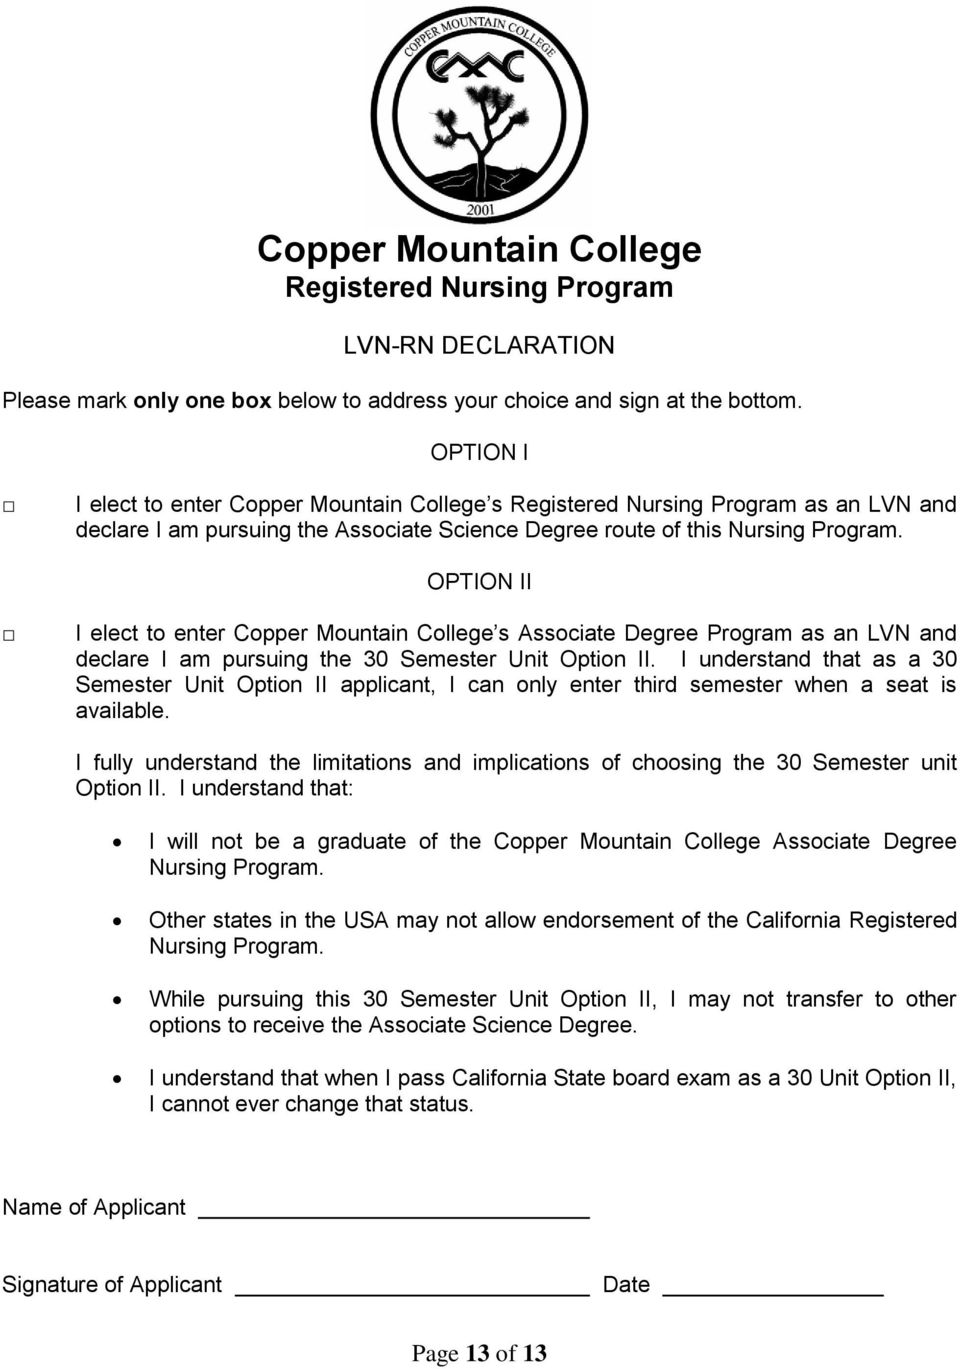 OPTION II I elect to enter Copper Mountain College s Associate Degree Program as an LVN and declare I am pursuing the 30 Semester Unit Option II.